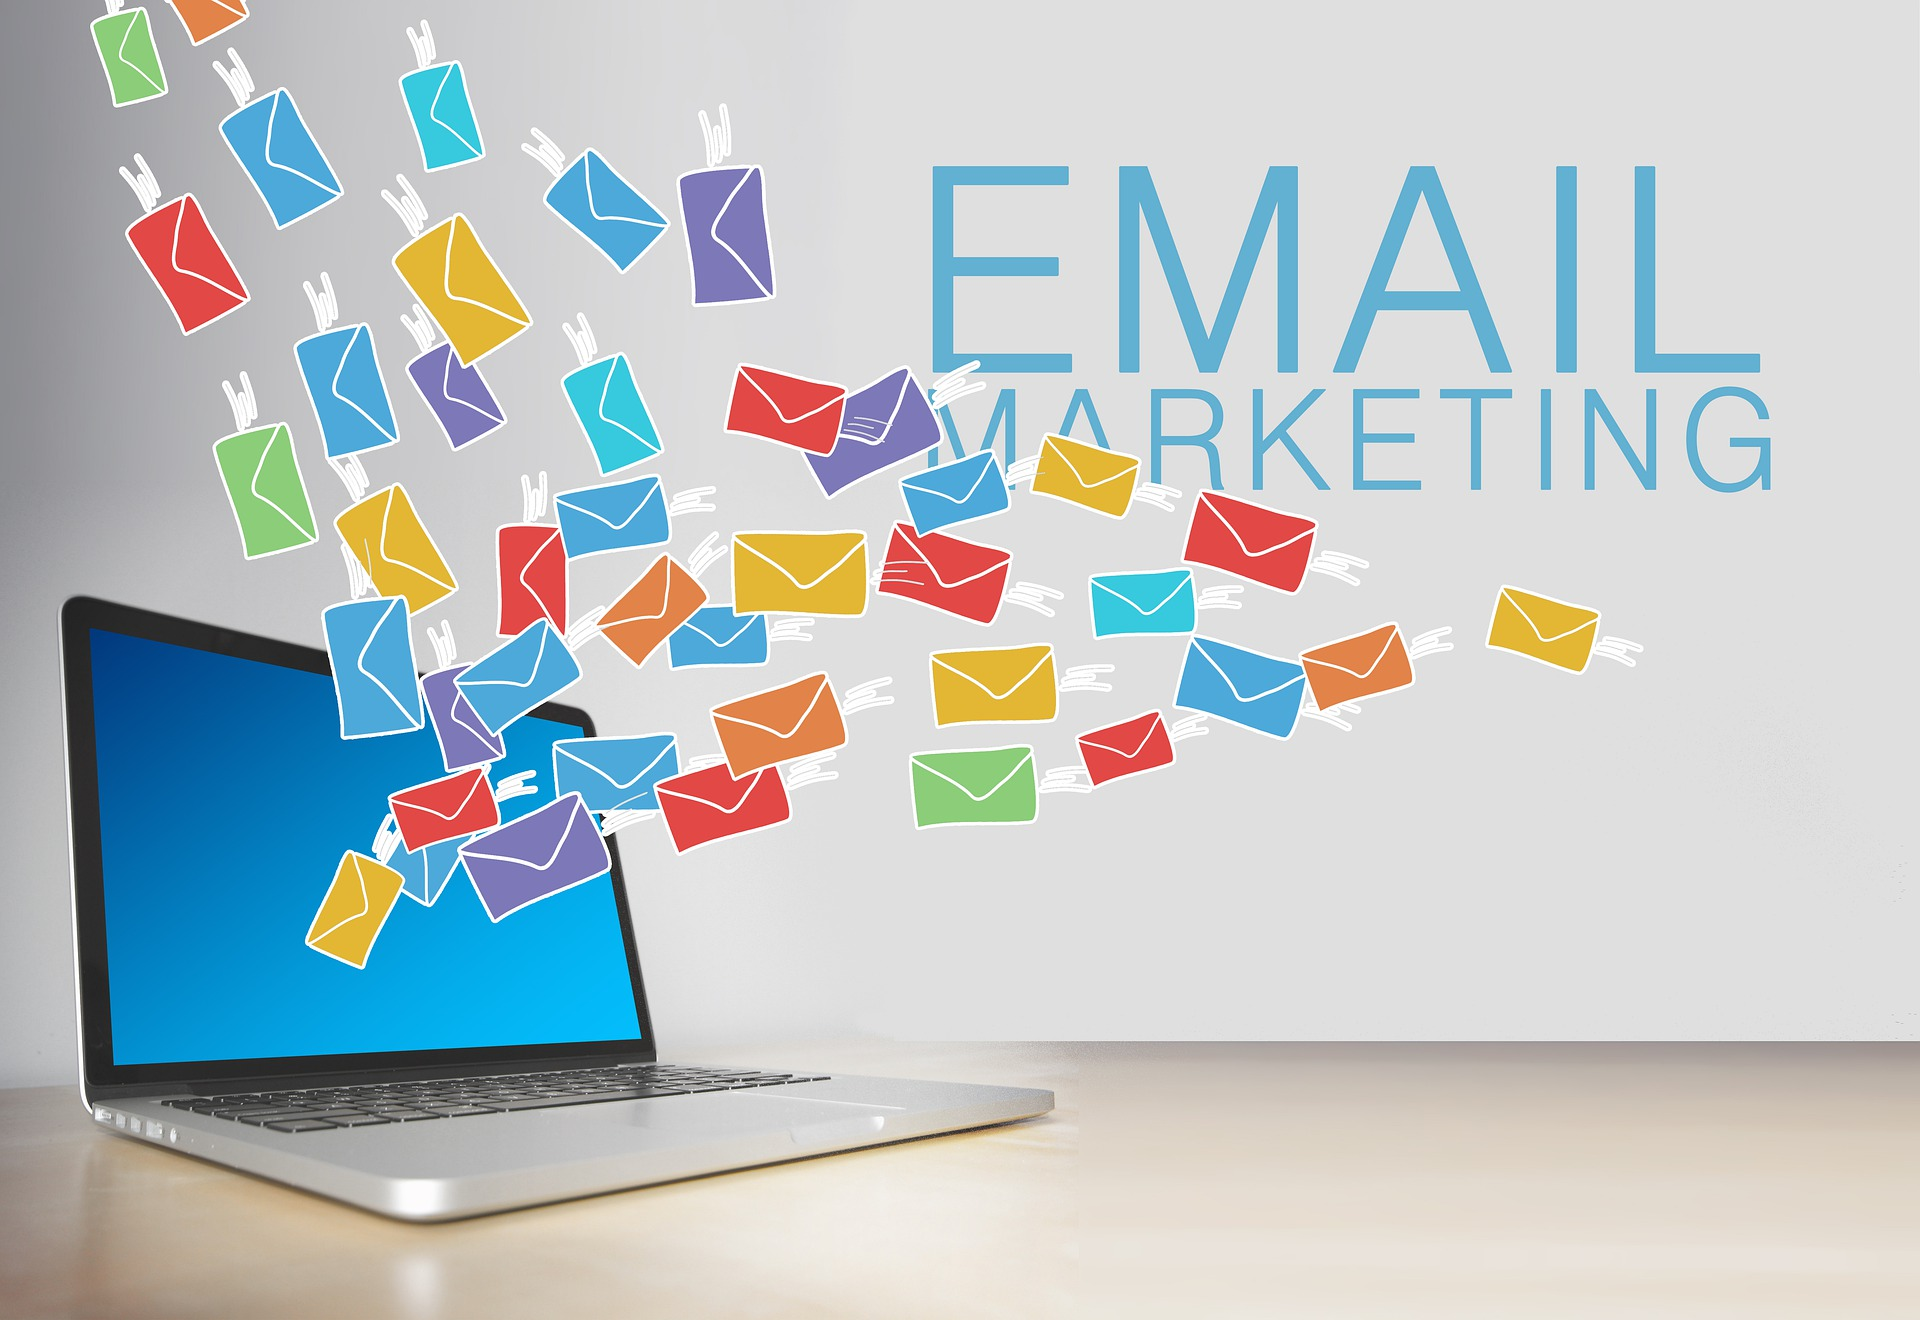 10 Best Email Marketing Tips To Boost Your Campaign In 2020 1